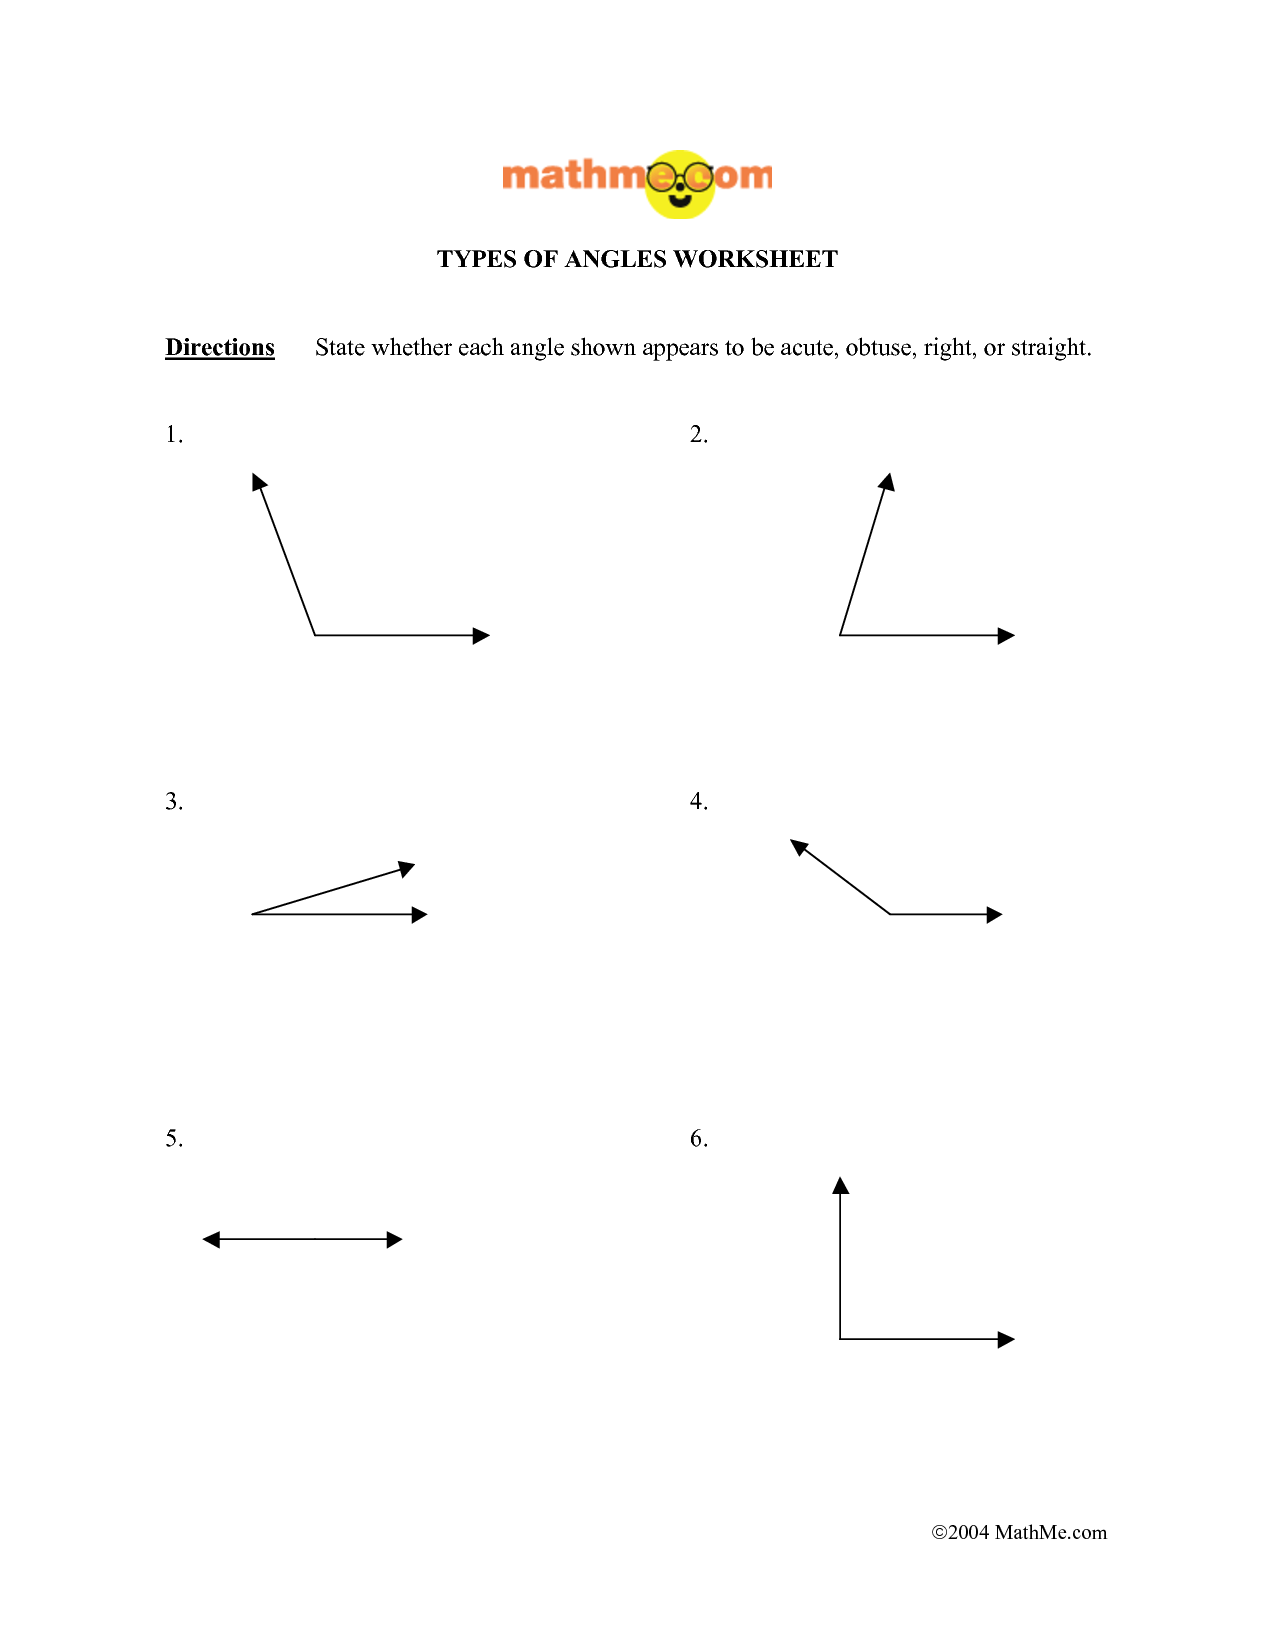 10 Best Images Of Acute Right Obtuse Angles Worksheet